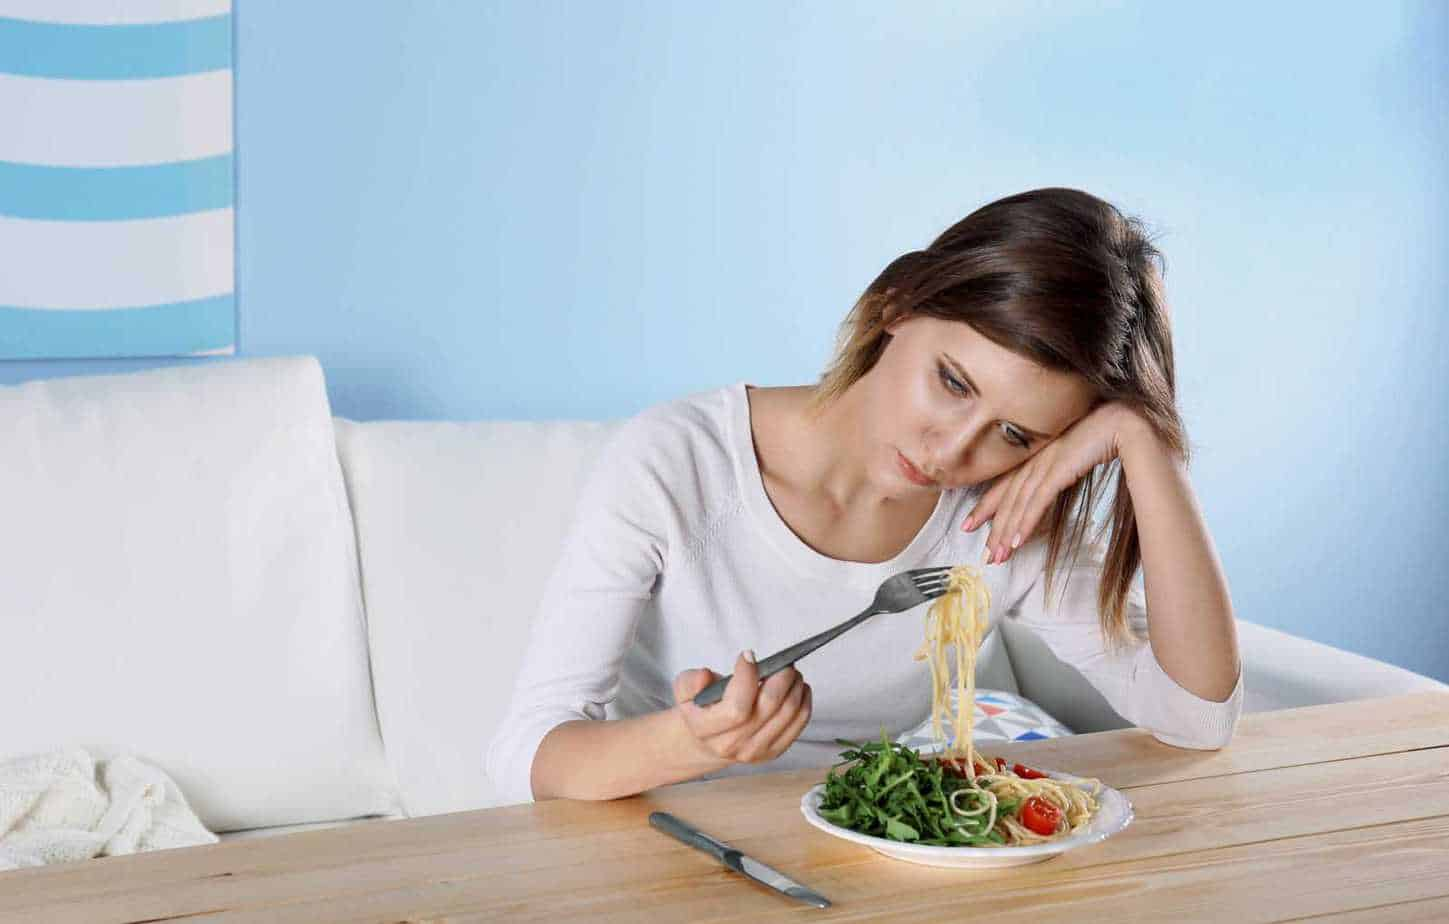 Dating someone with anorexia nervosa